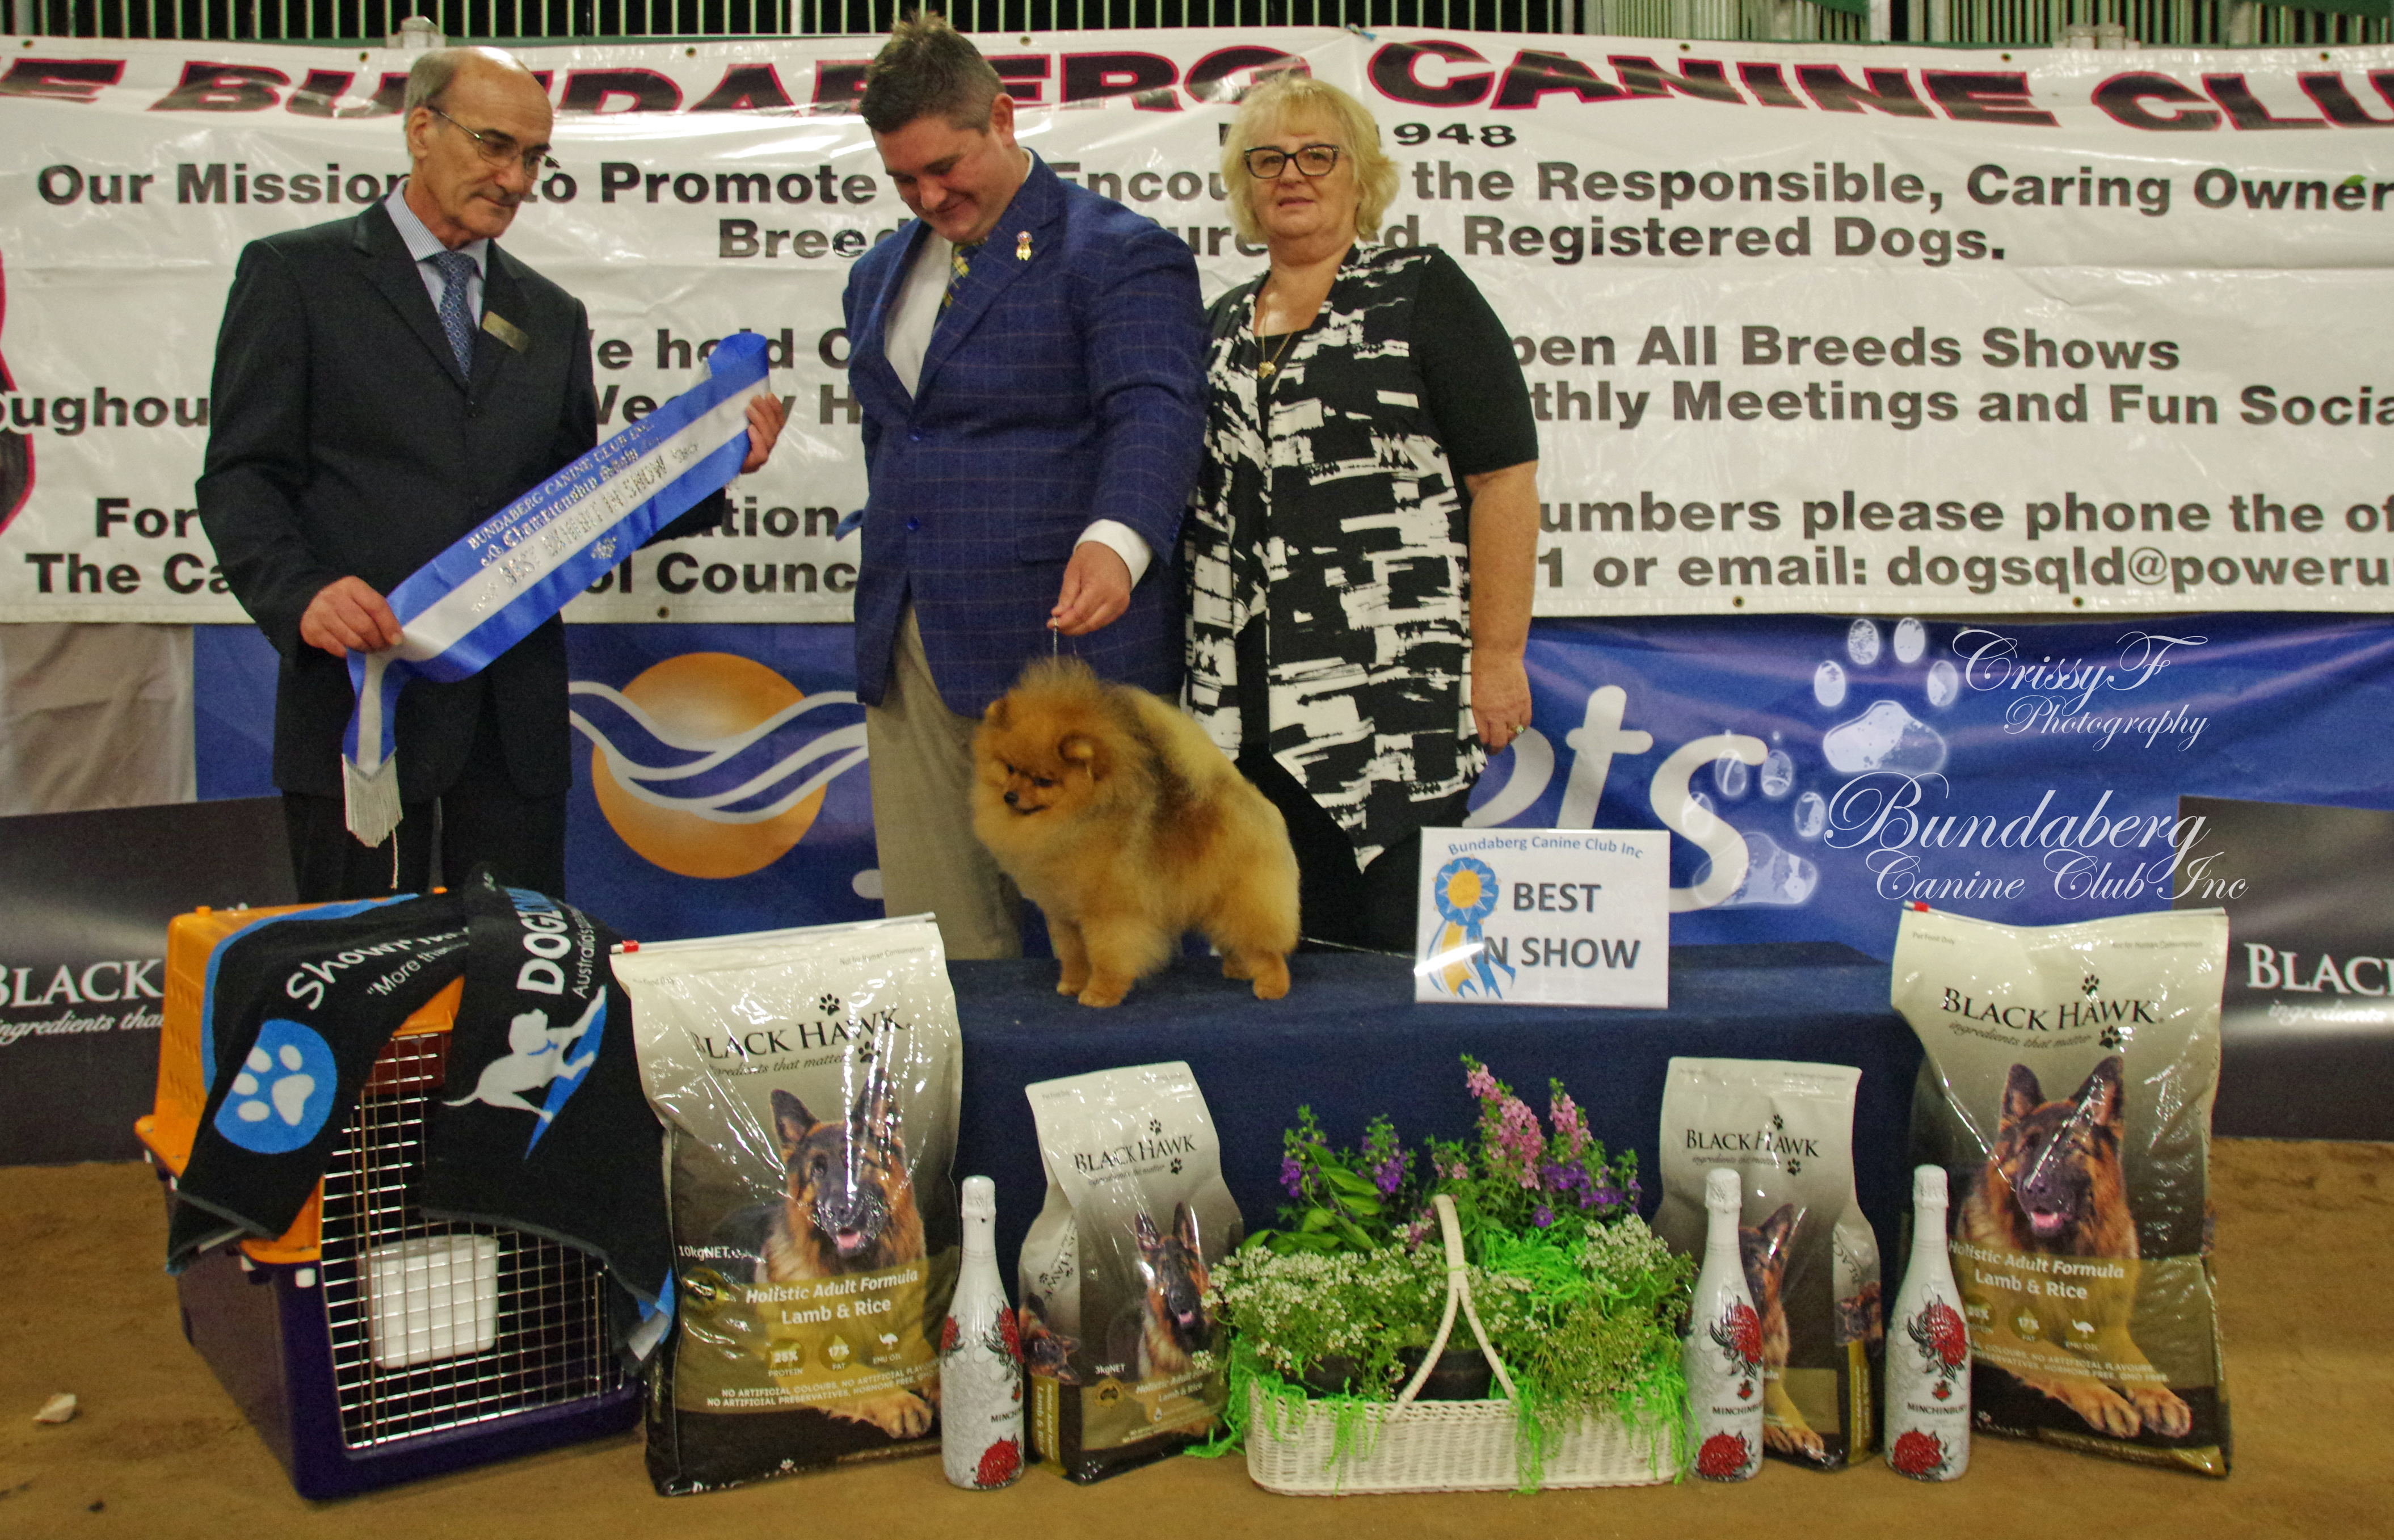 Rebel the Pomeranian wins BEST IN SHOW at Bundaberg